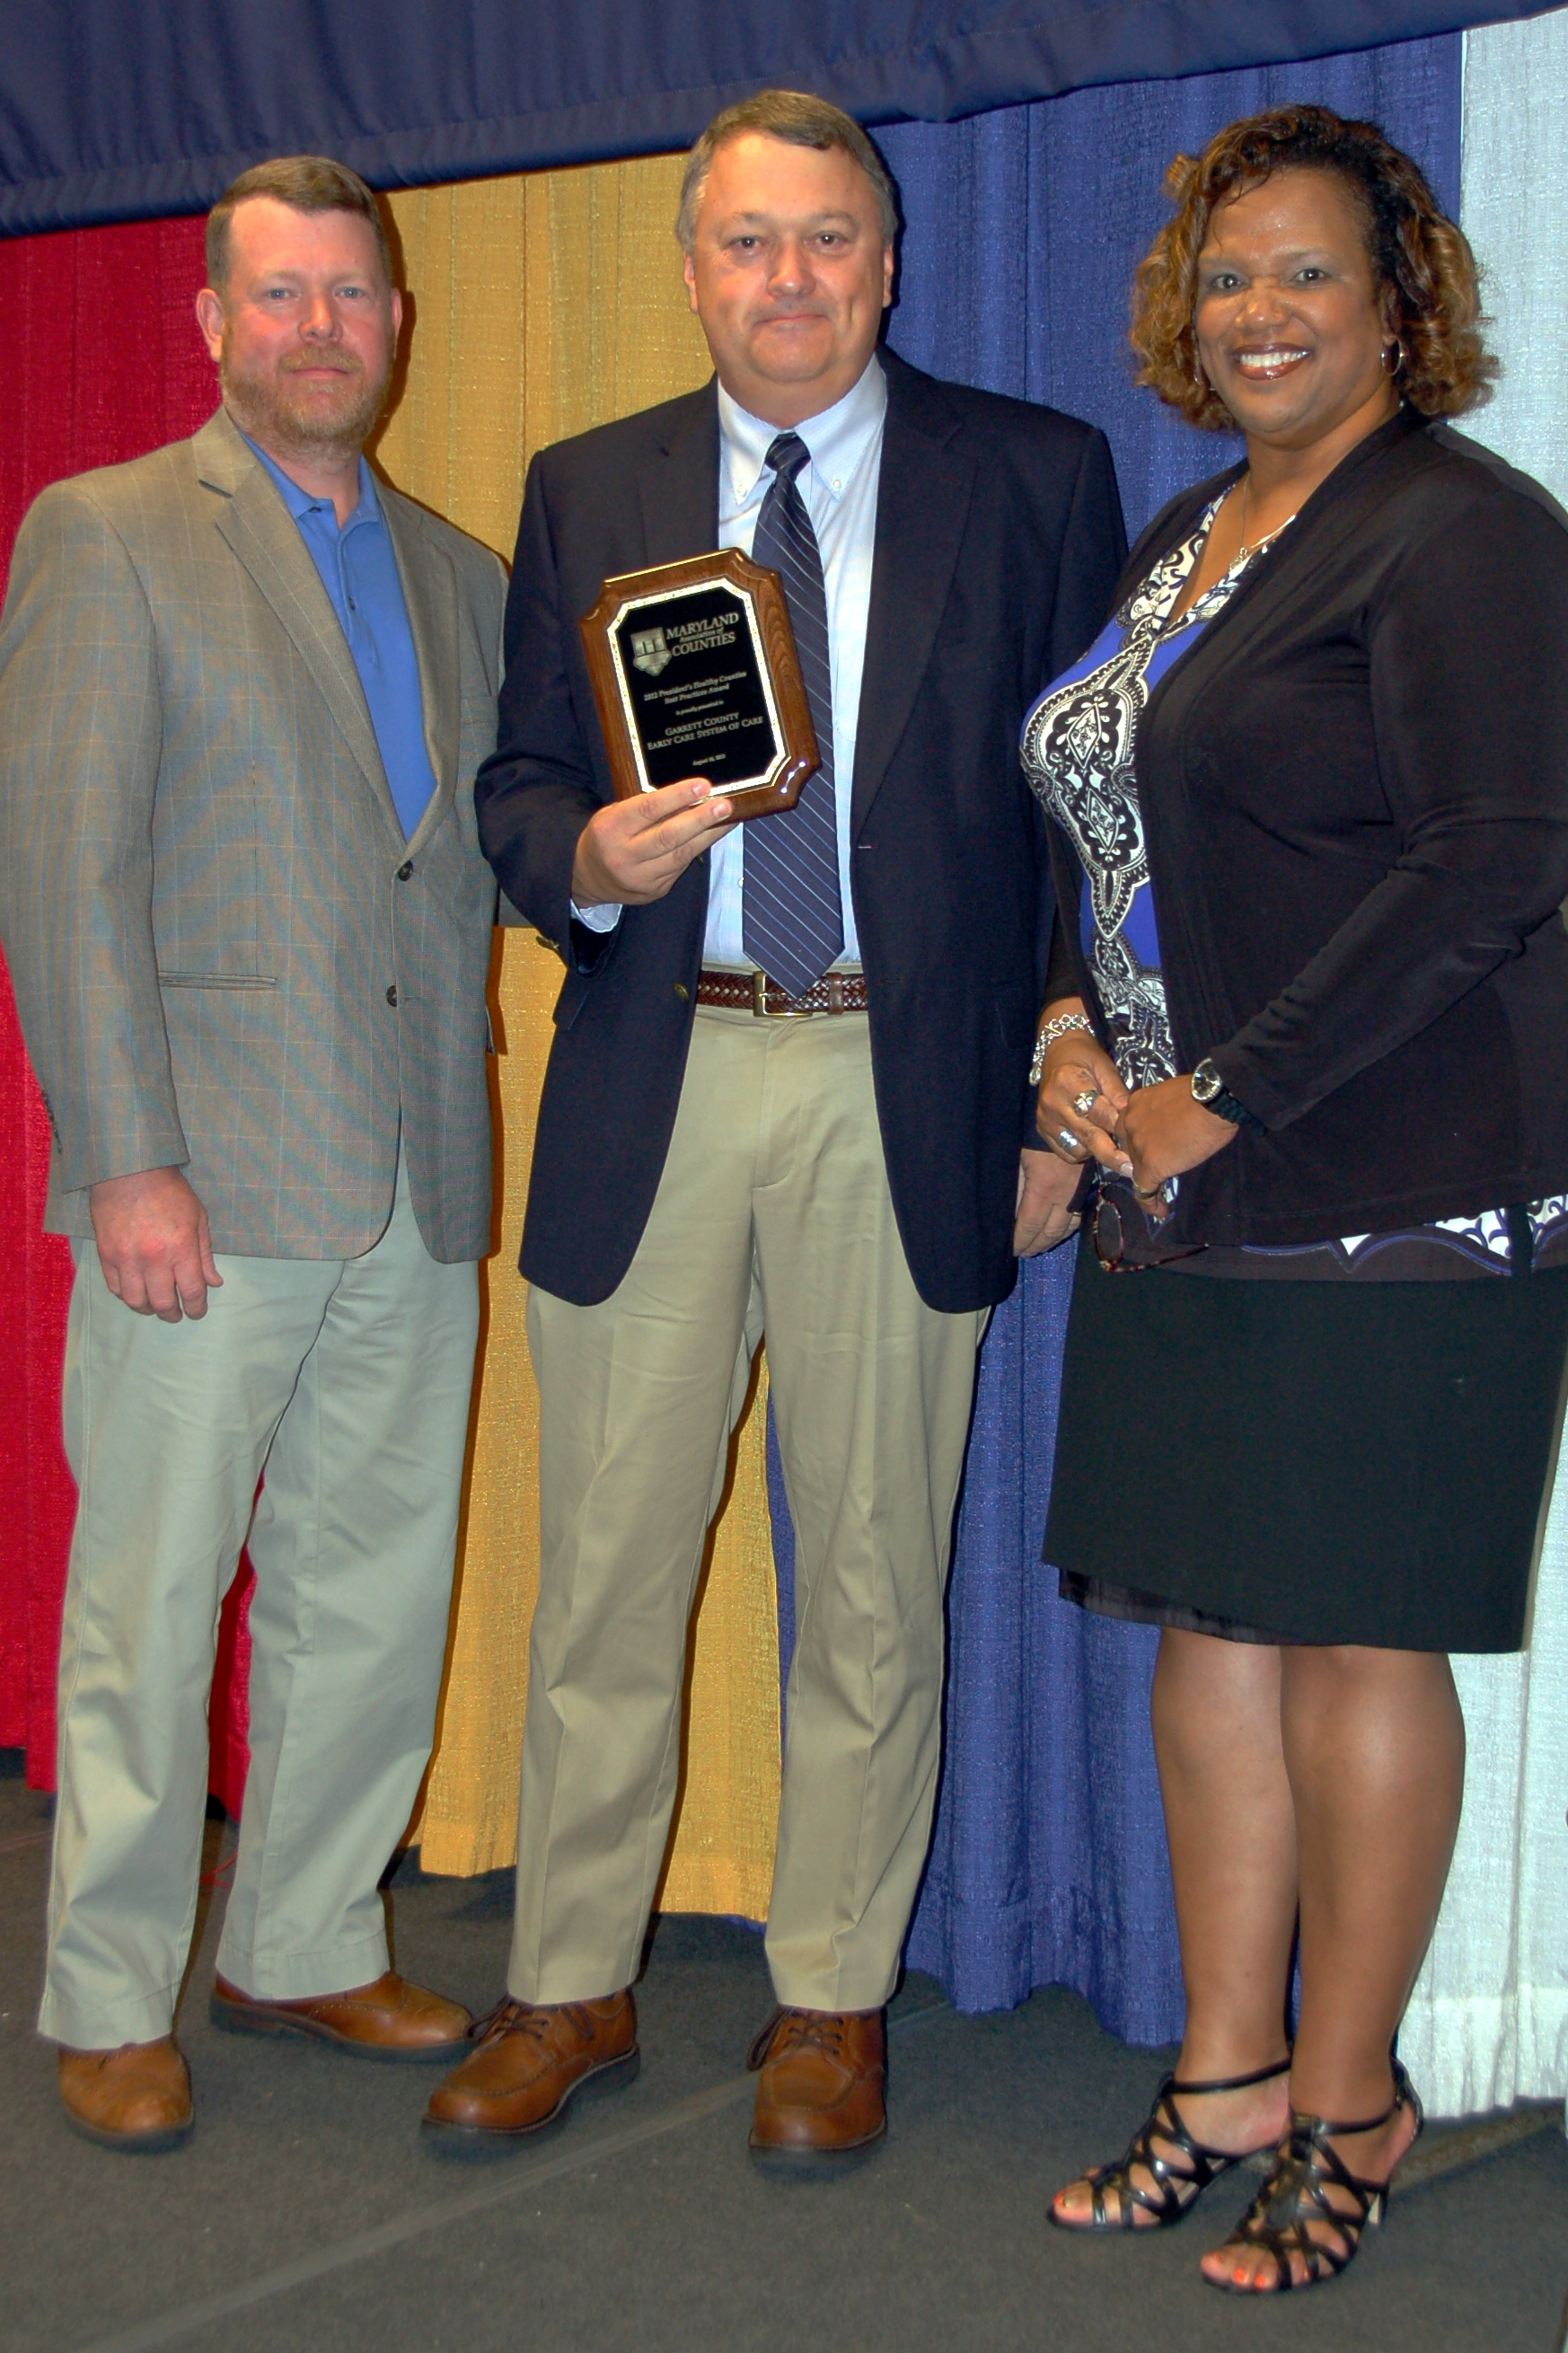 Man holding award next to two individuals